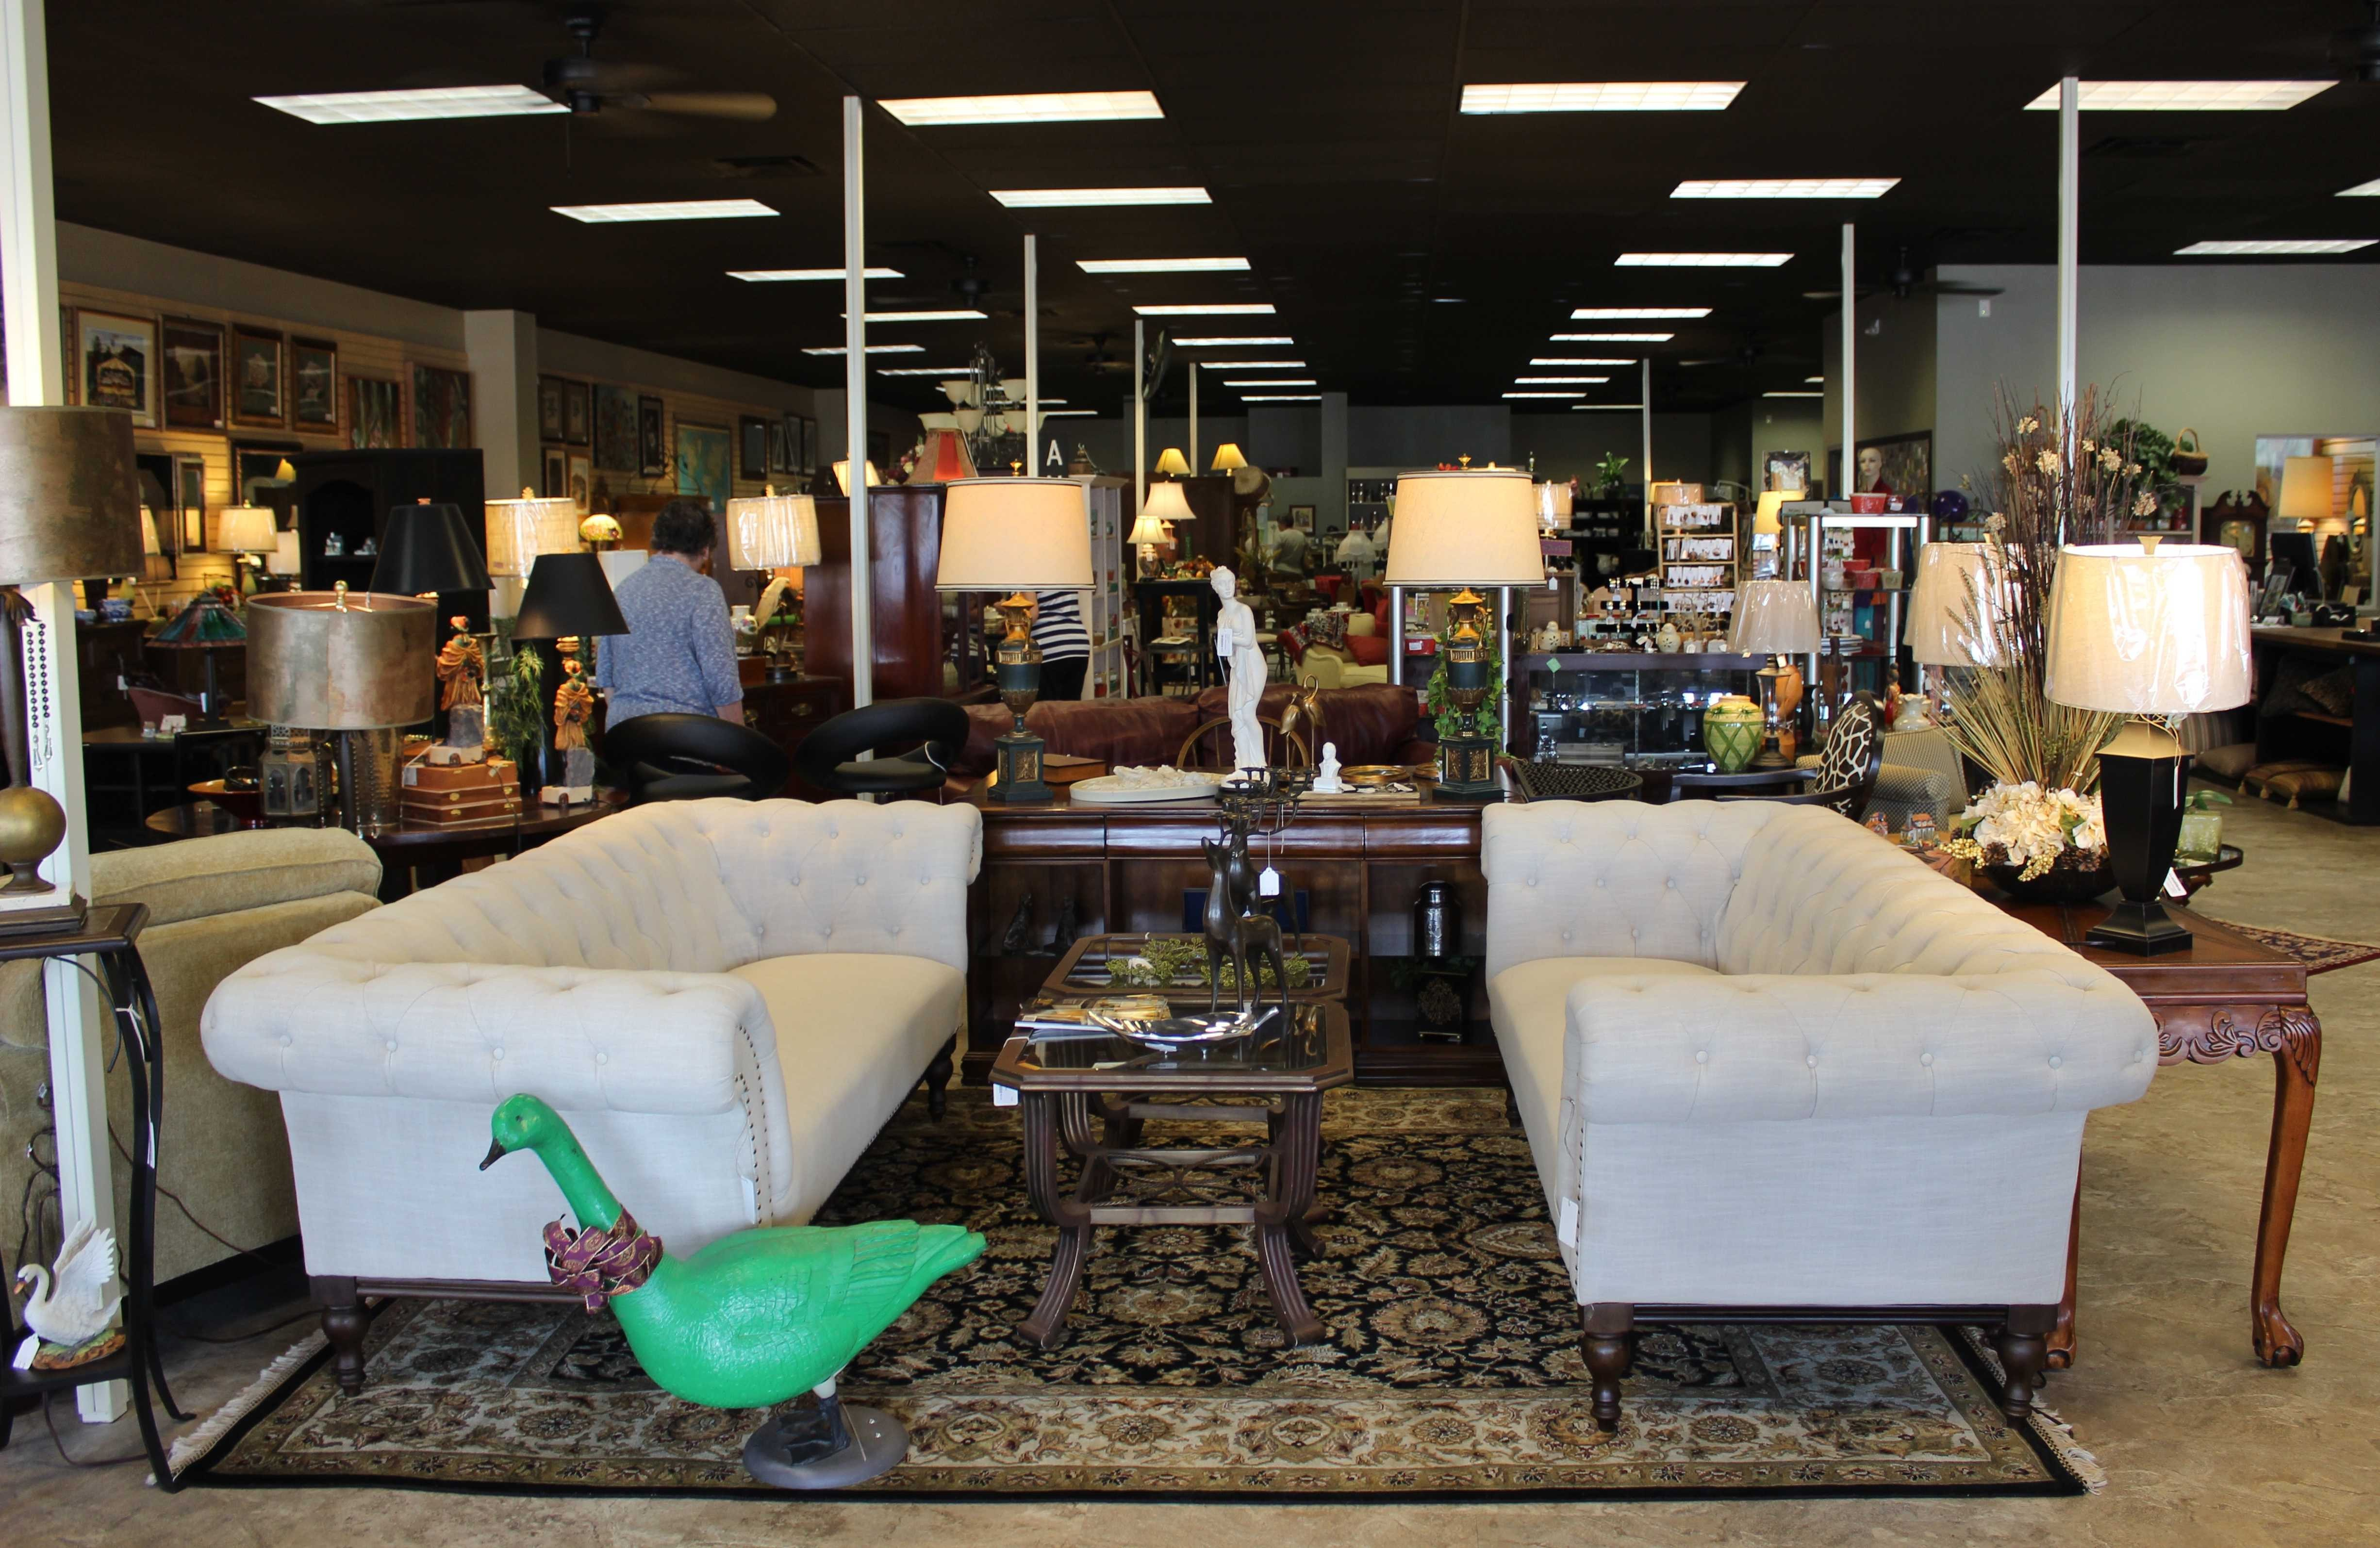 Wondrous The Green Gooses Second Location Now Open In Webster Groves Home Interior And Landscaping Analalmasignezvosmurscom